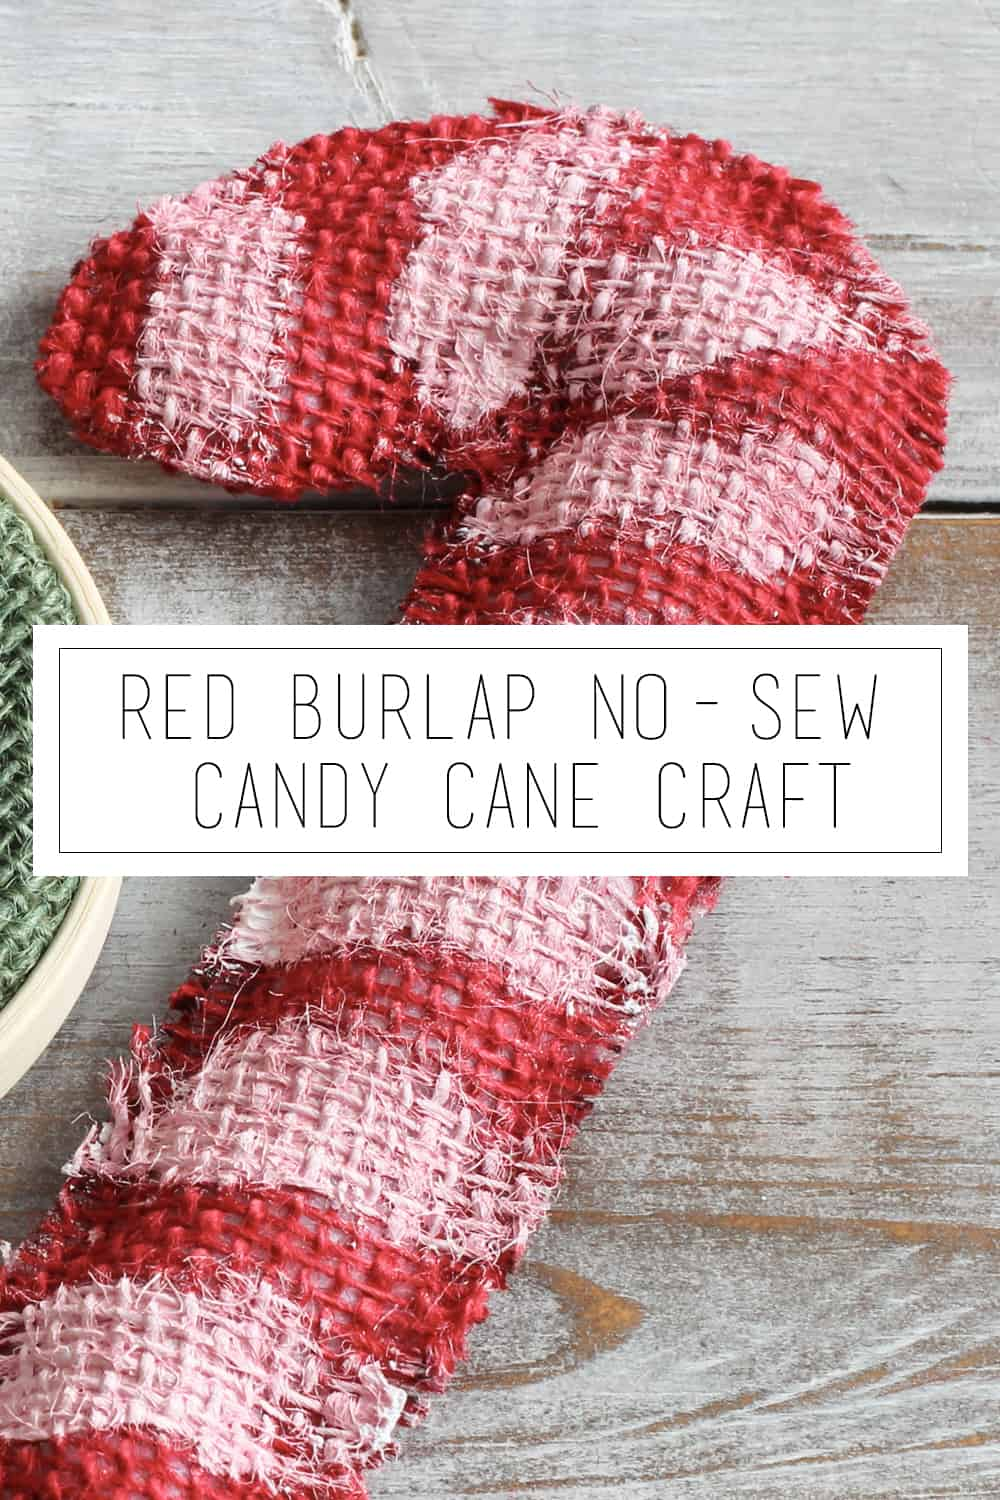 Red Burlap No Sew Candy Cane Craft Bowl Fillers Or Ornaments